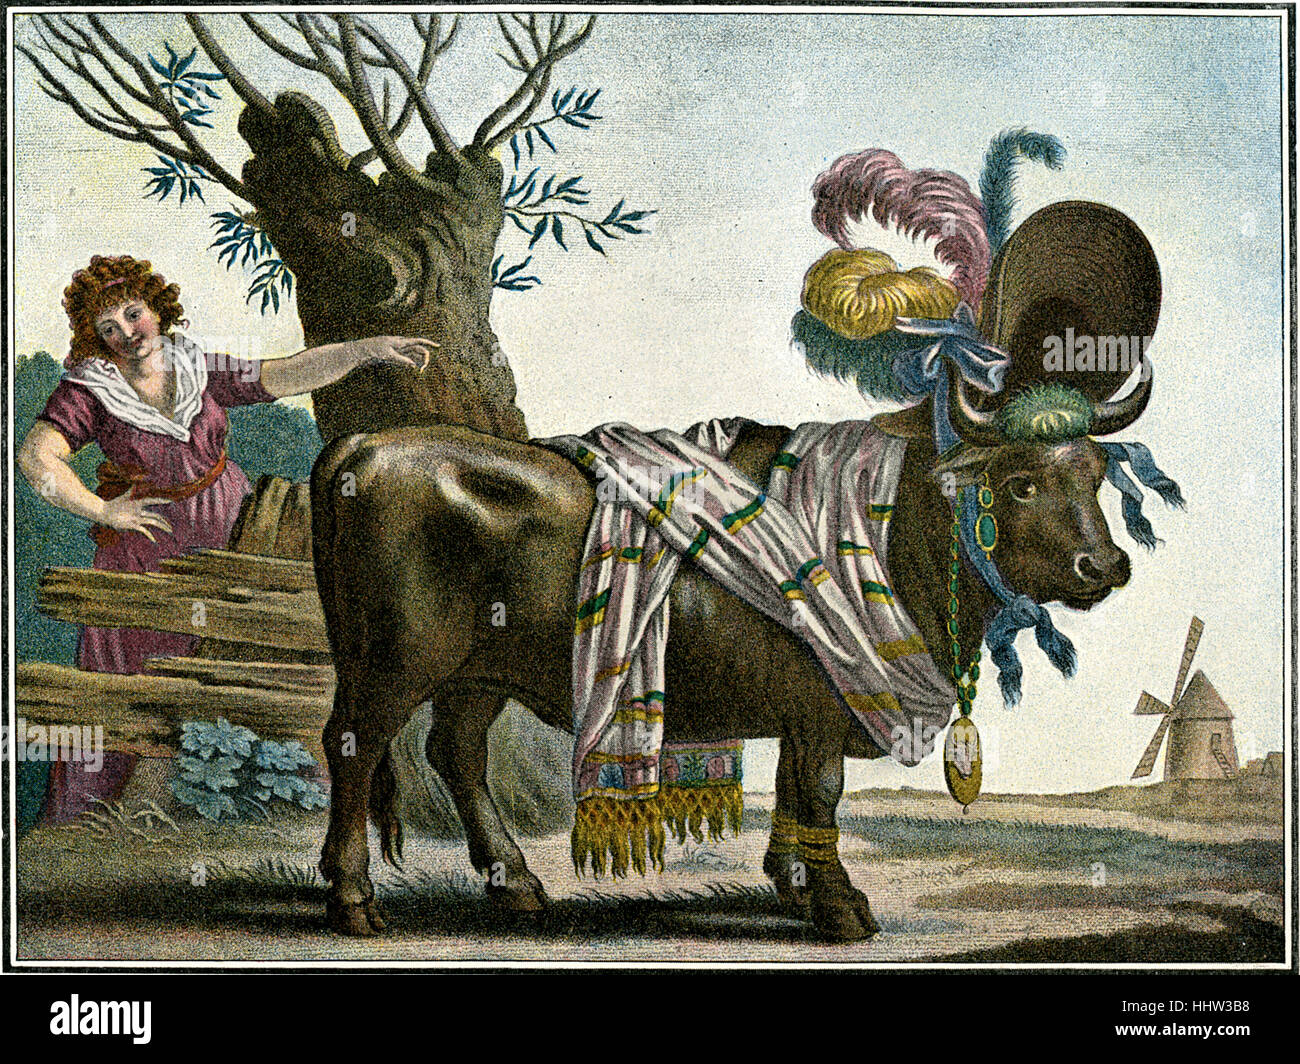 The fashion ox - anonymous French caricature satirising 19th century fashion, depicting a cow wearing a large hat, Stock Photo